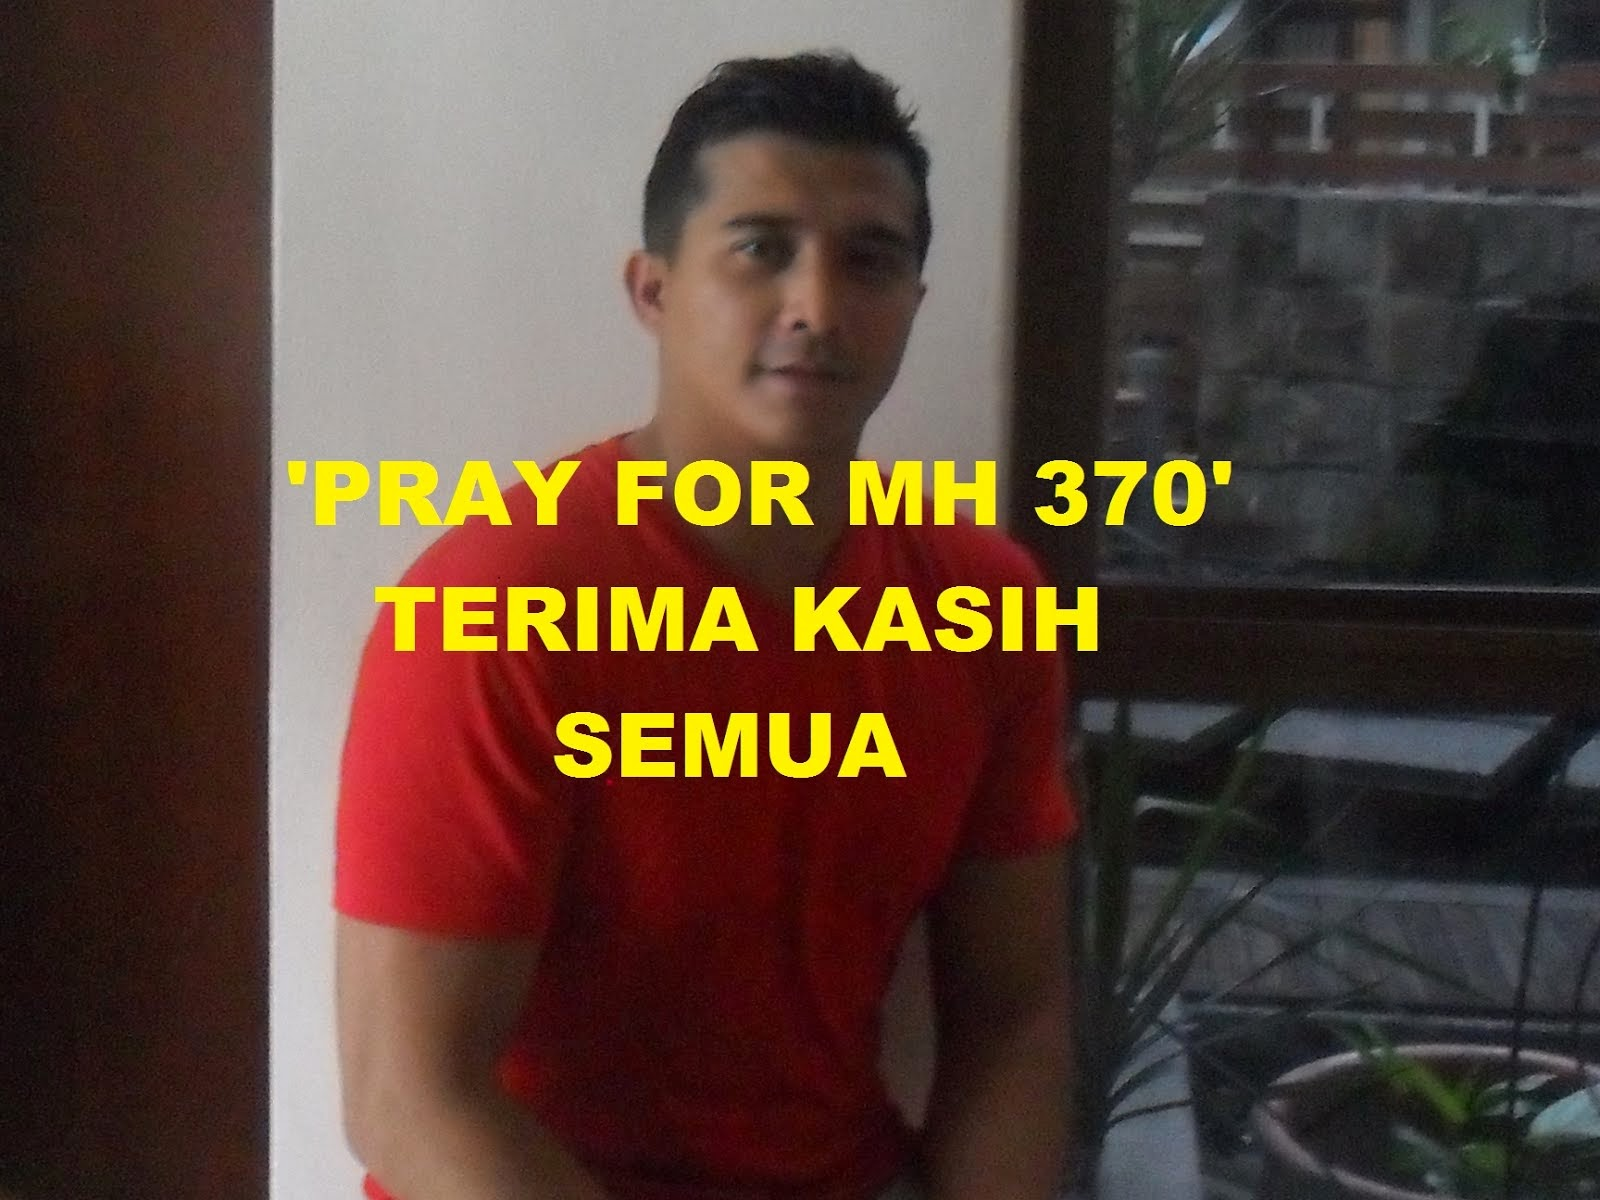 'PARY FOR MH 370'